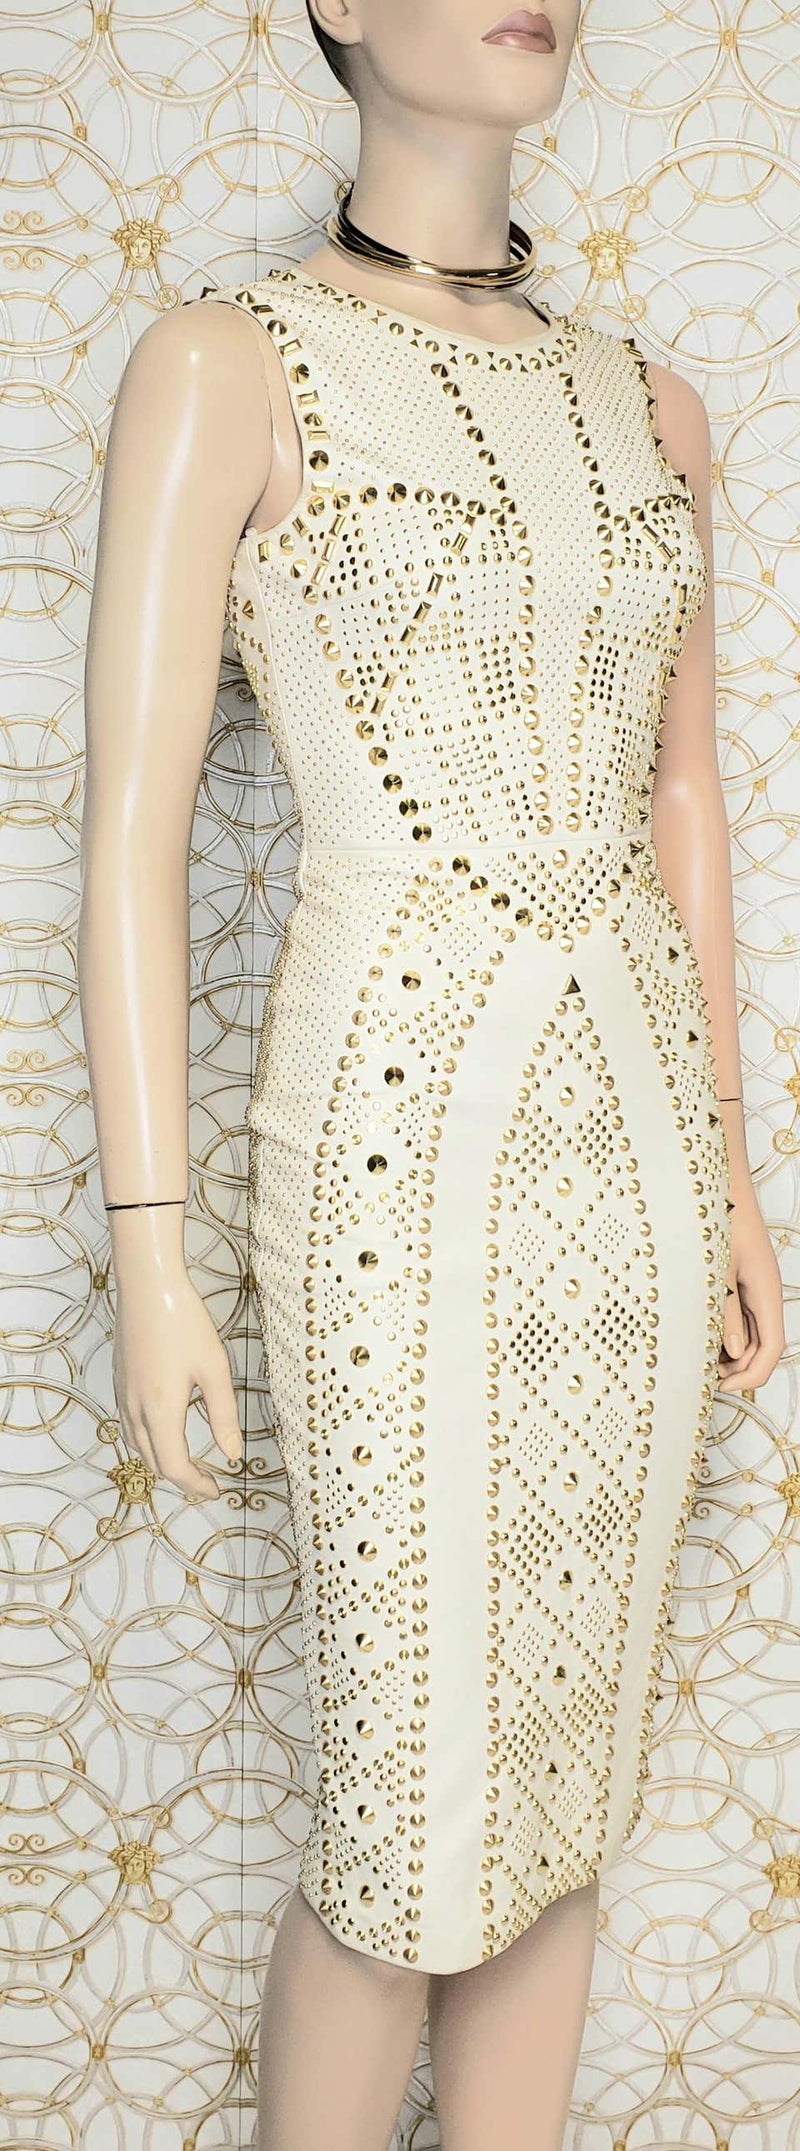 S/S 2012 look #27 VERSACE WHITE STUDDED EMBELLISHED LEATHER DRESS